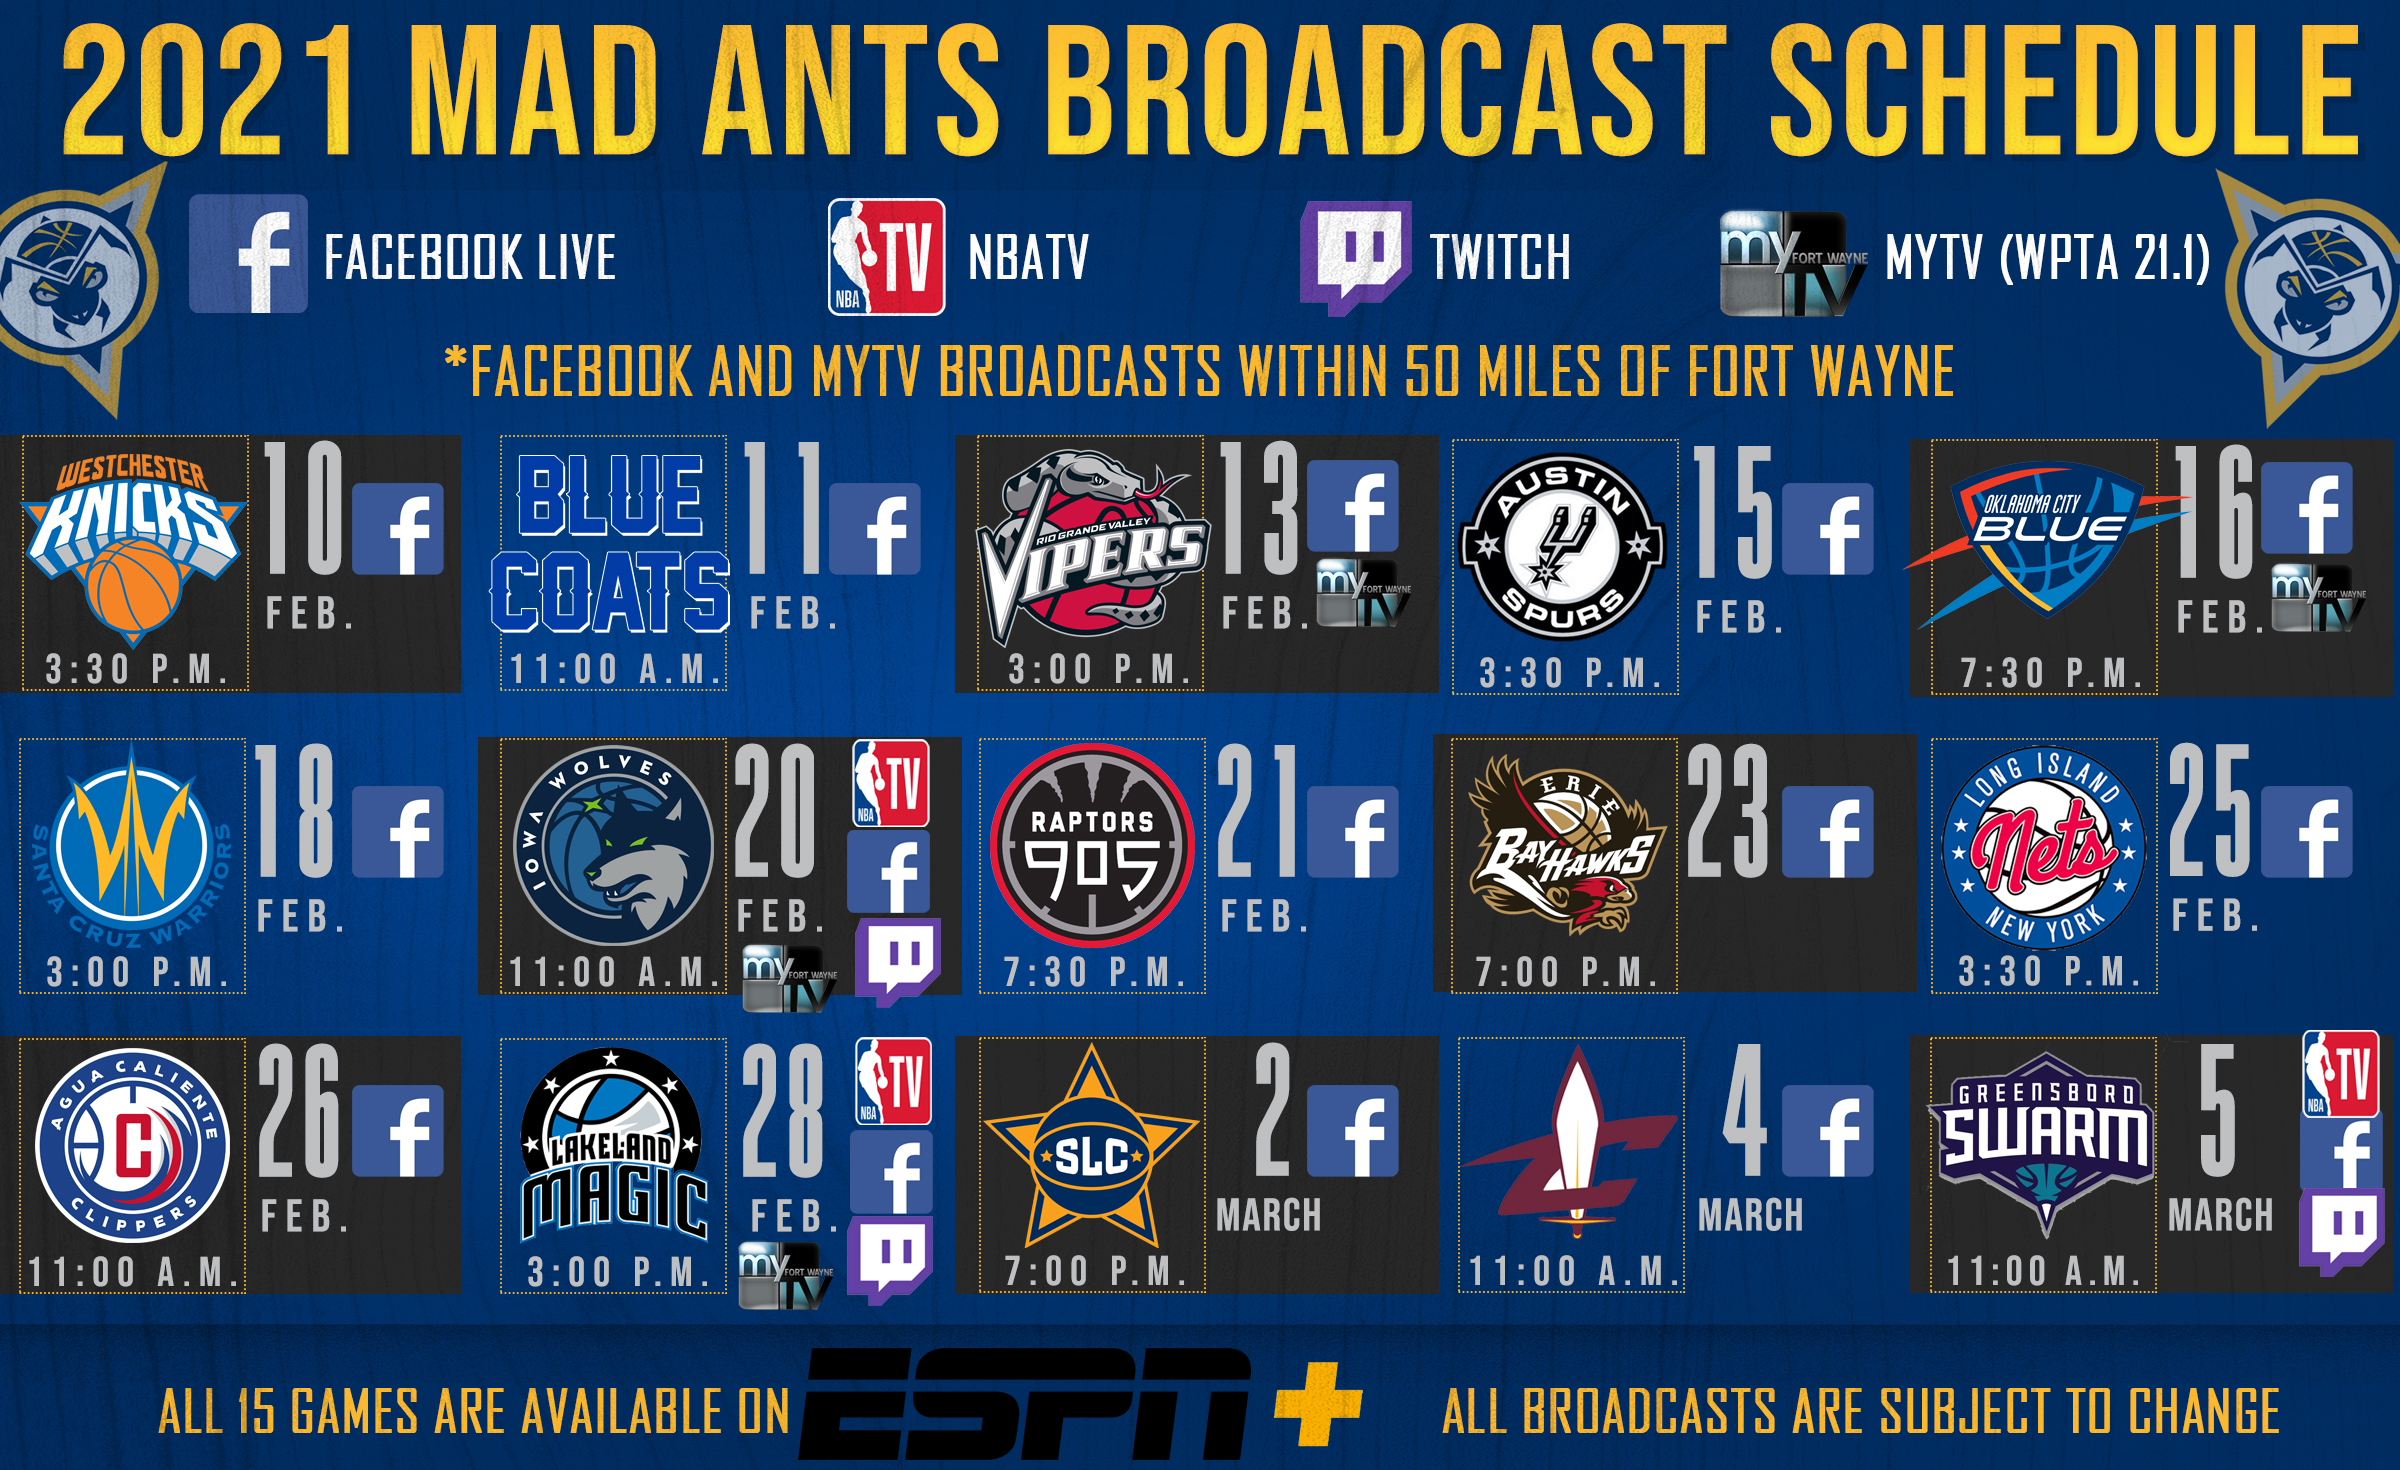 Mad Ants Broadcast Schedule